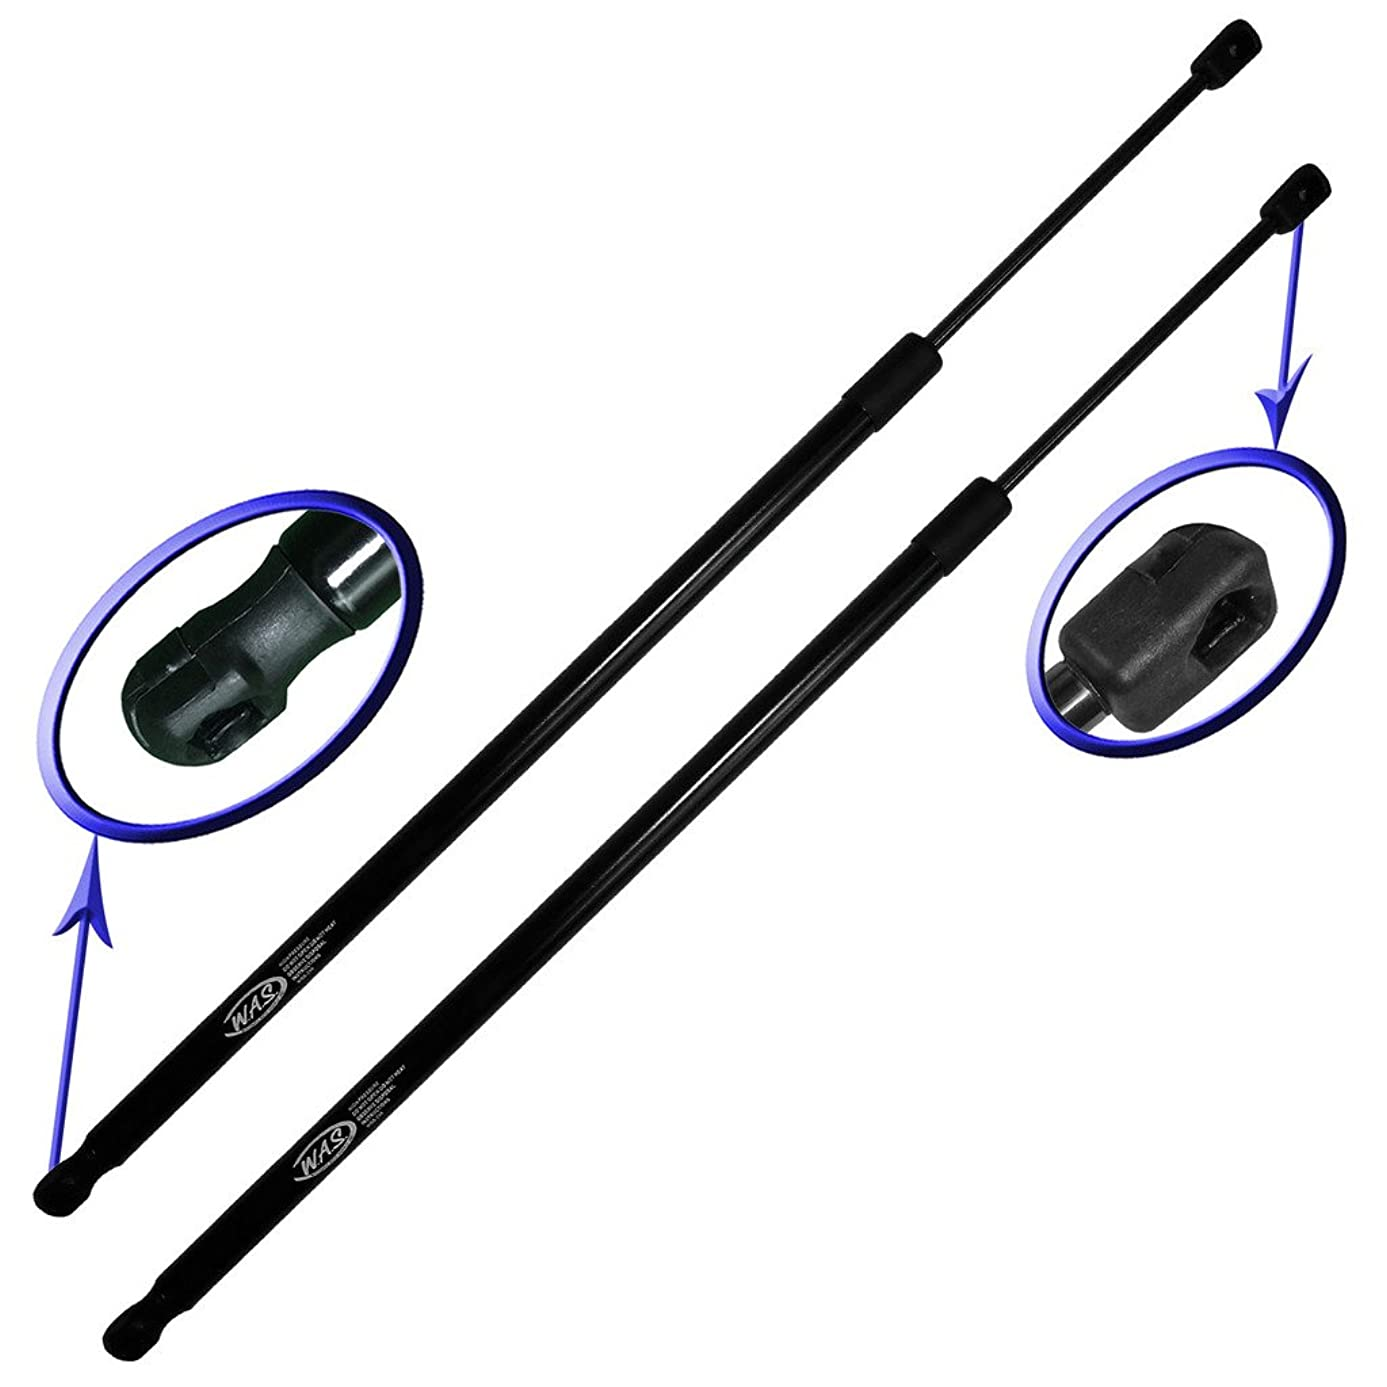 Wisconsin Auto Supply Two Rear Hatch Gas Charged Lift Supports for 2012-2016 Volkswagen Beetle Without Rear Spoiler. Left and Right Side. WGS-705-2,Black